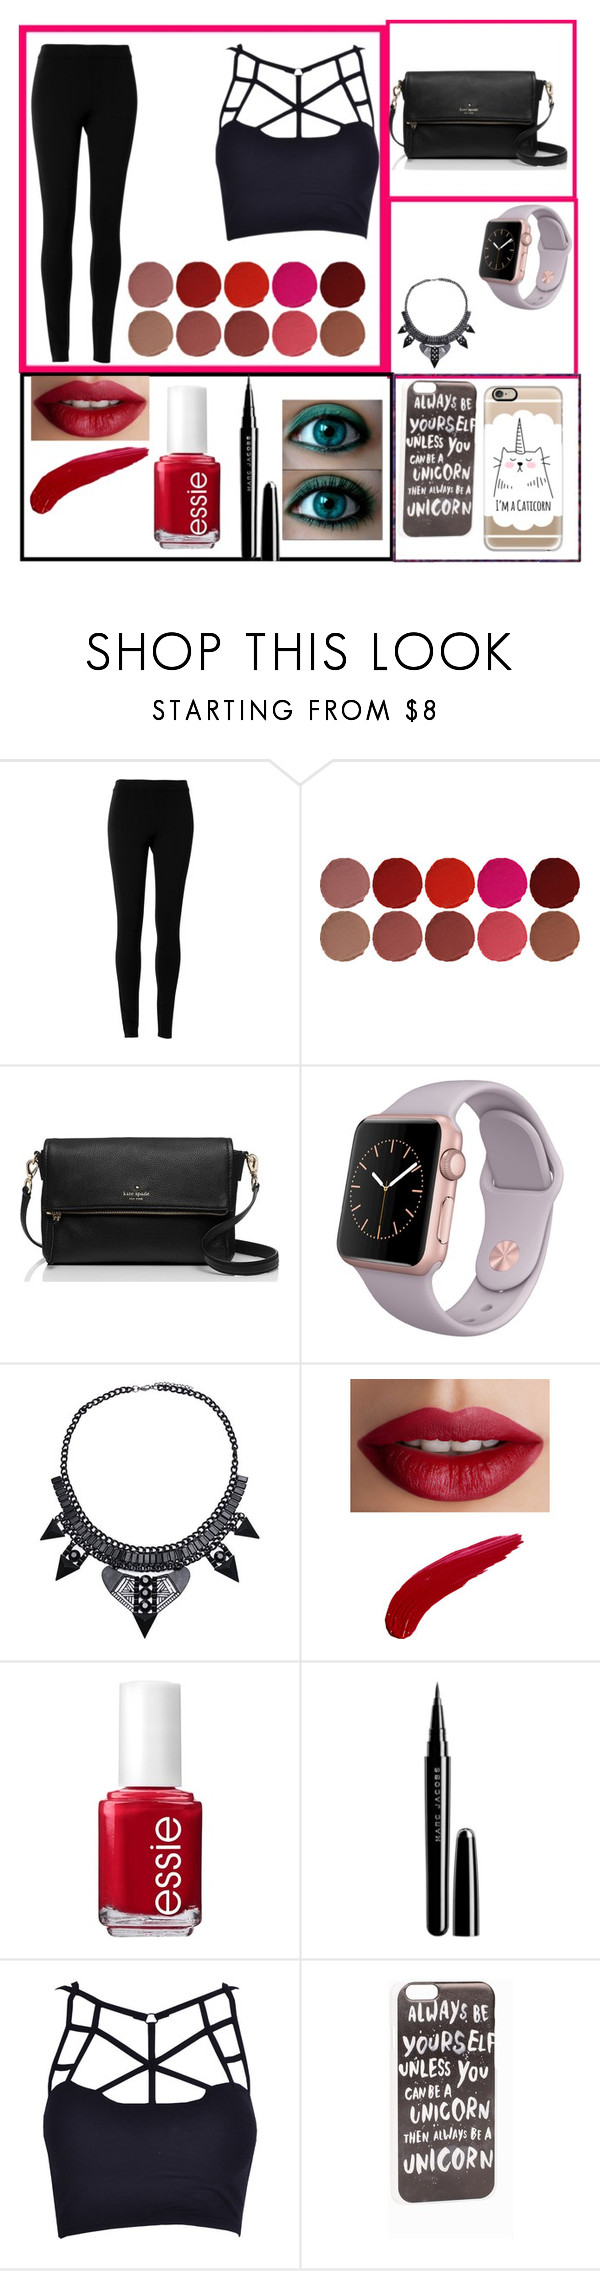 """""""Day in the life of audition"""" by justlilli-1 ❤ liked on Polyvore featuring Max Studio, Charlotte Tilbury, Kate Spade, TheBalm, Essie, Marc Jacobs, JFR and Casetify"""